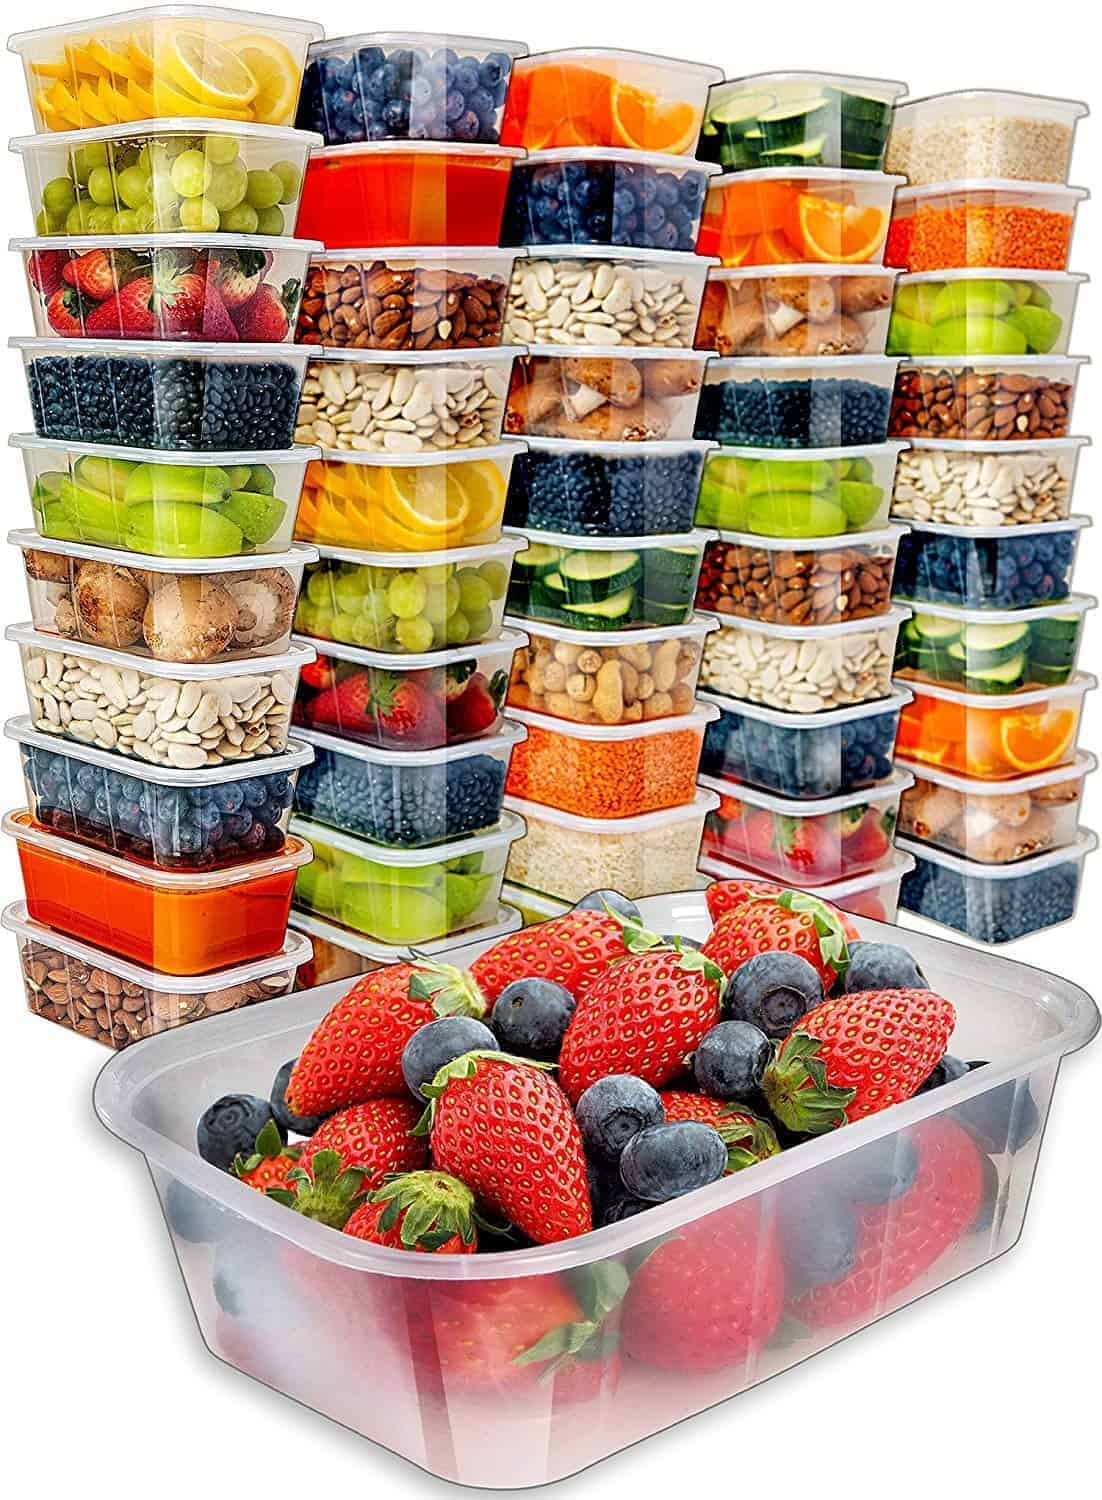 food storage containers with lids meal prep | kimschob.com